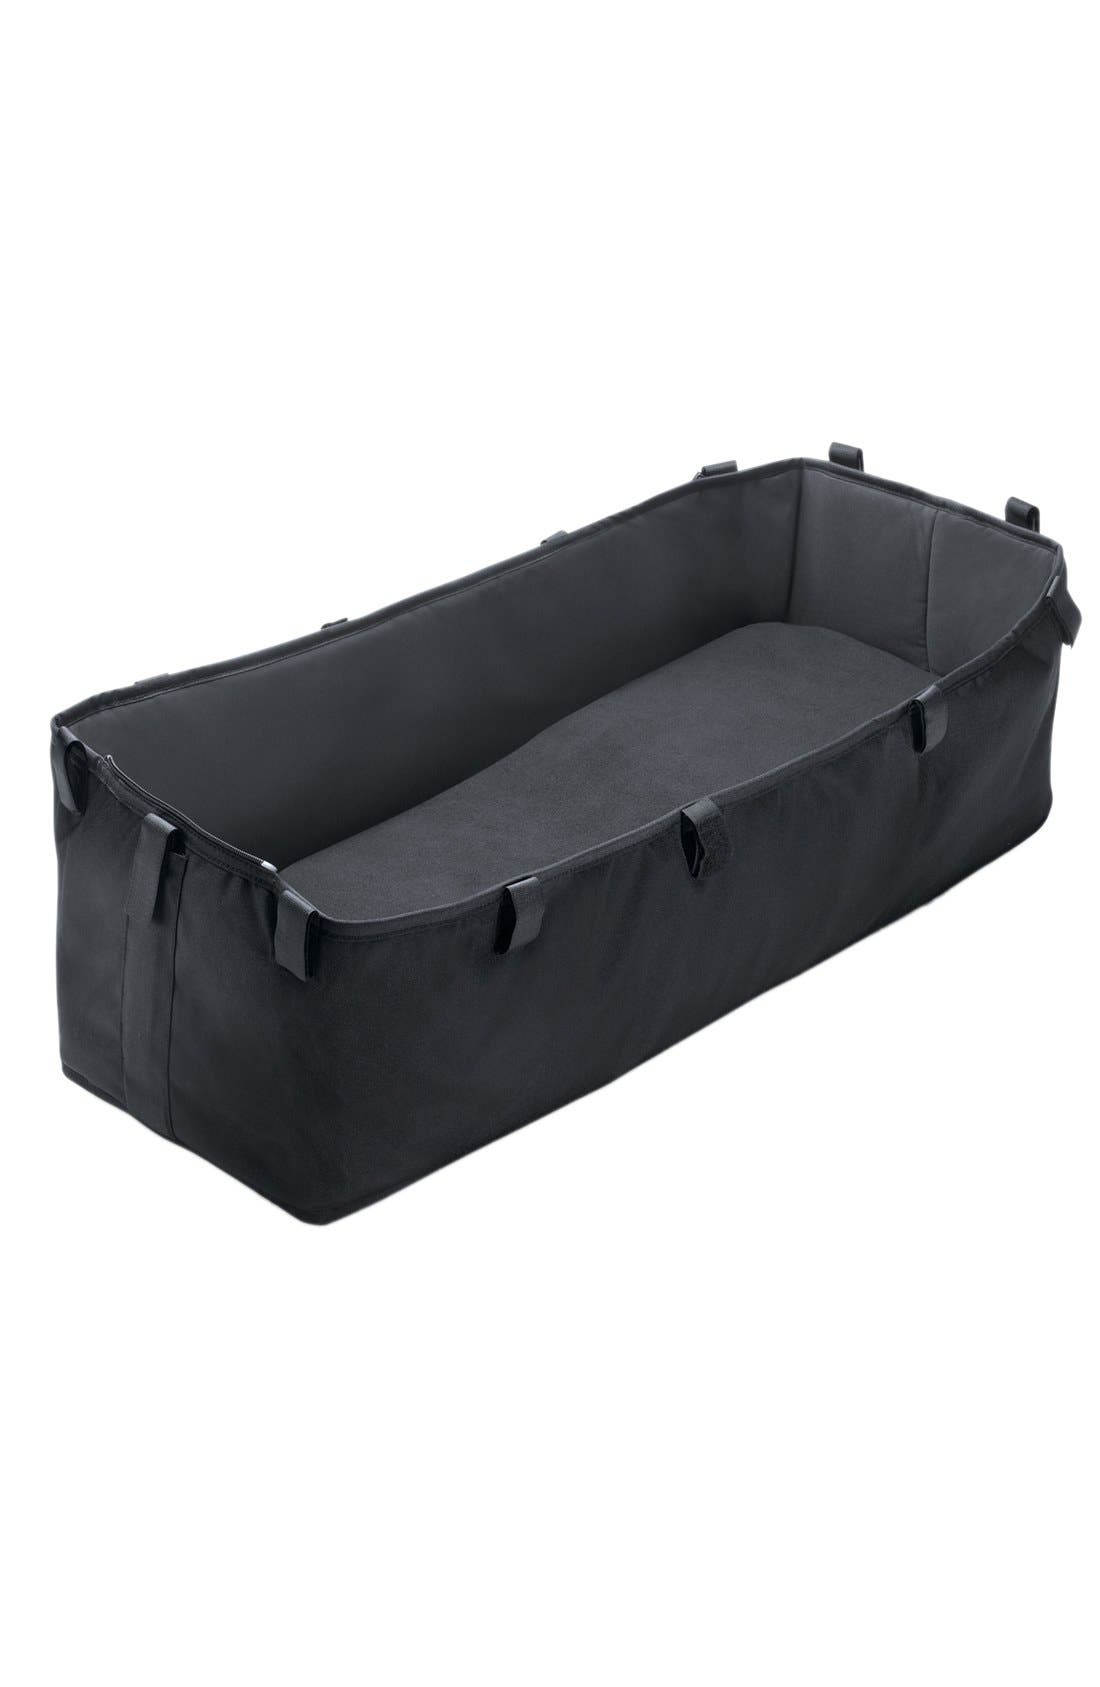 'Donkey' Bassinet Base Complete,                             Main thumbnail 1, color,                             Black